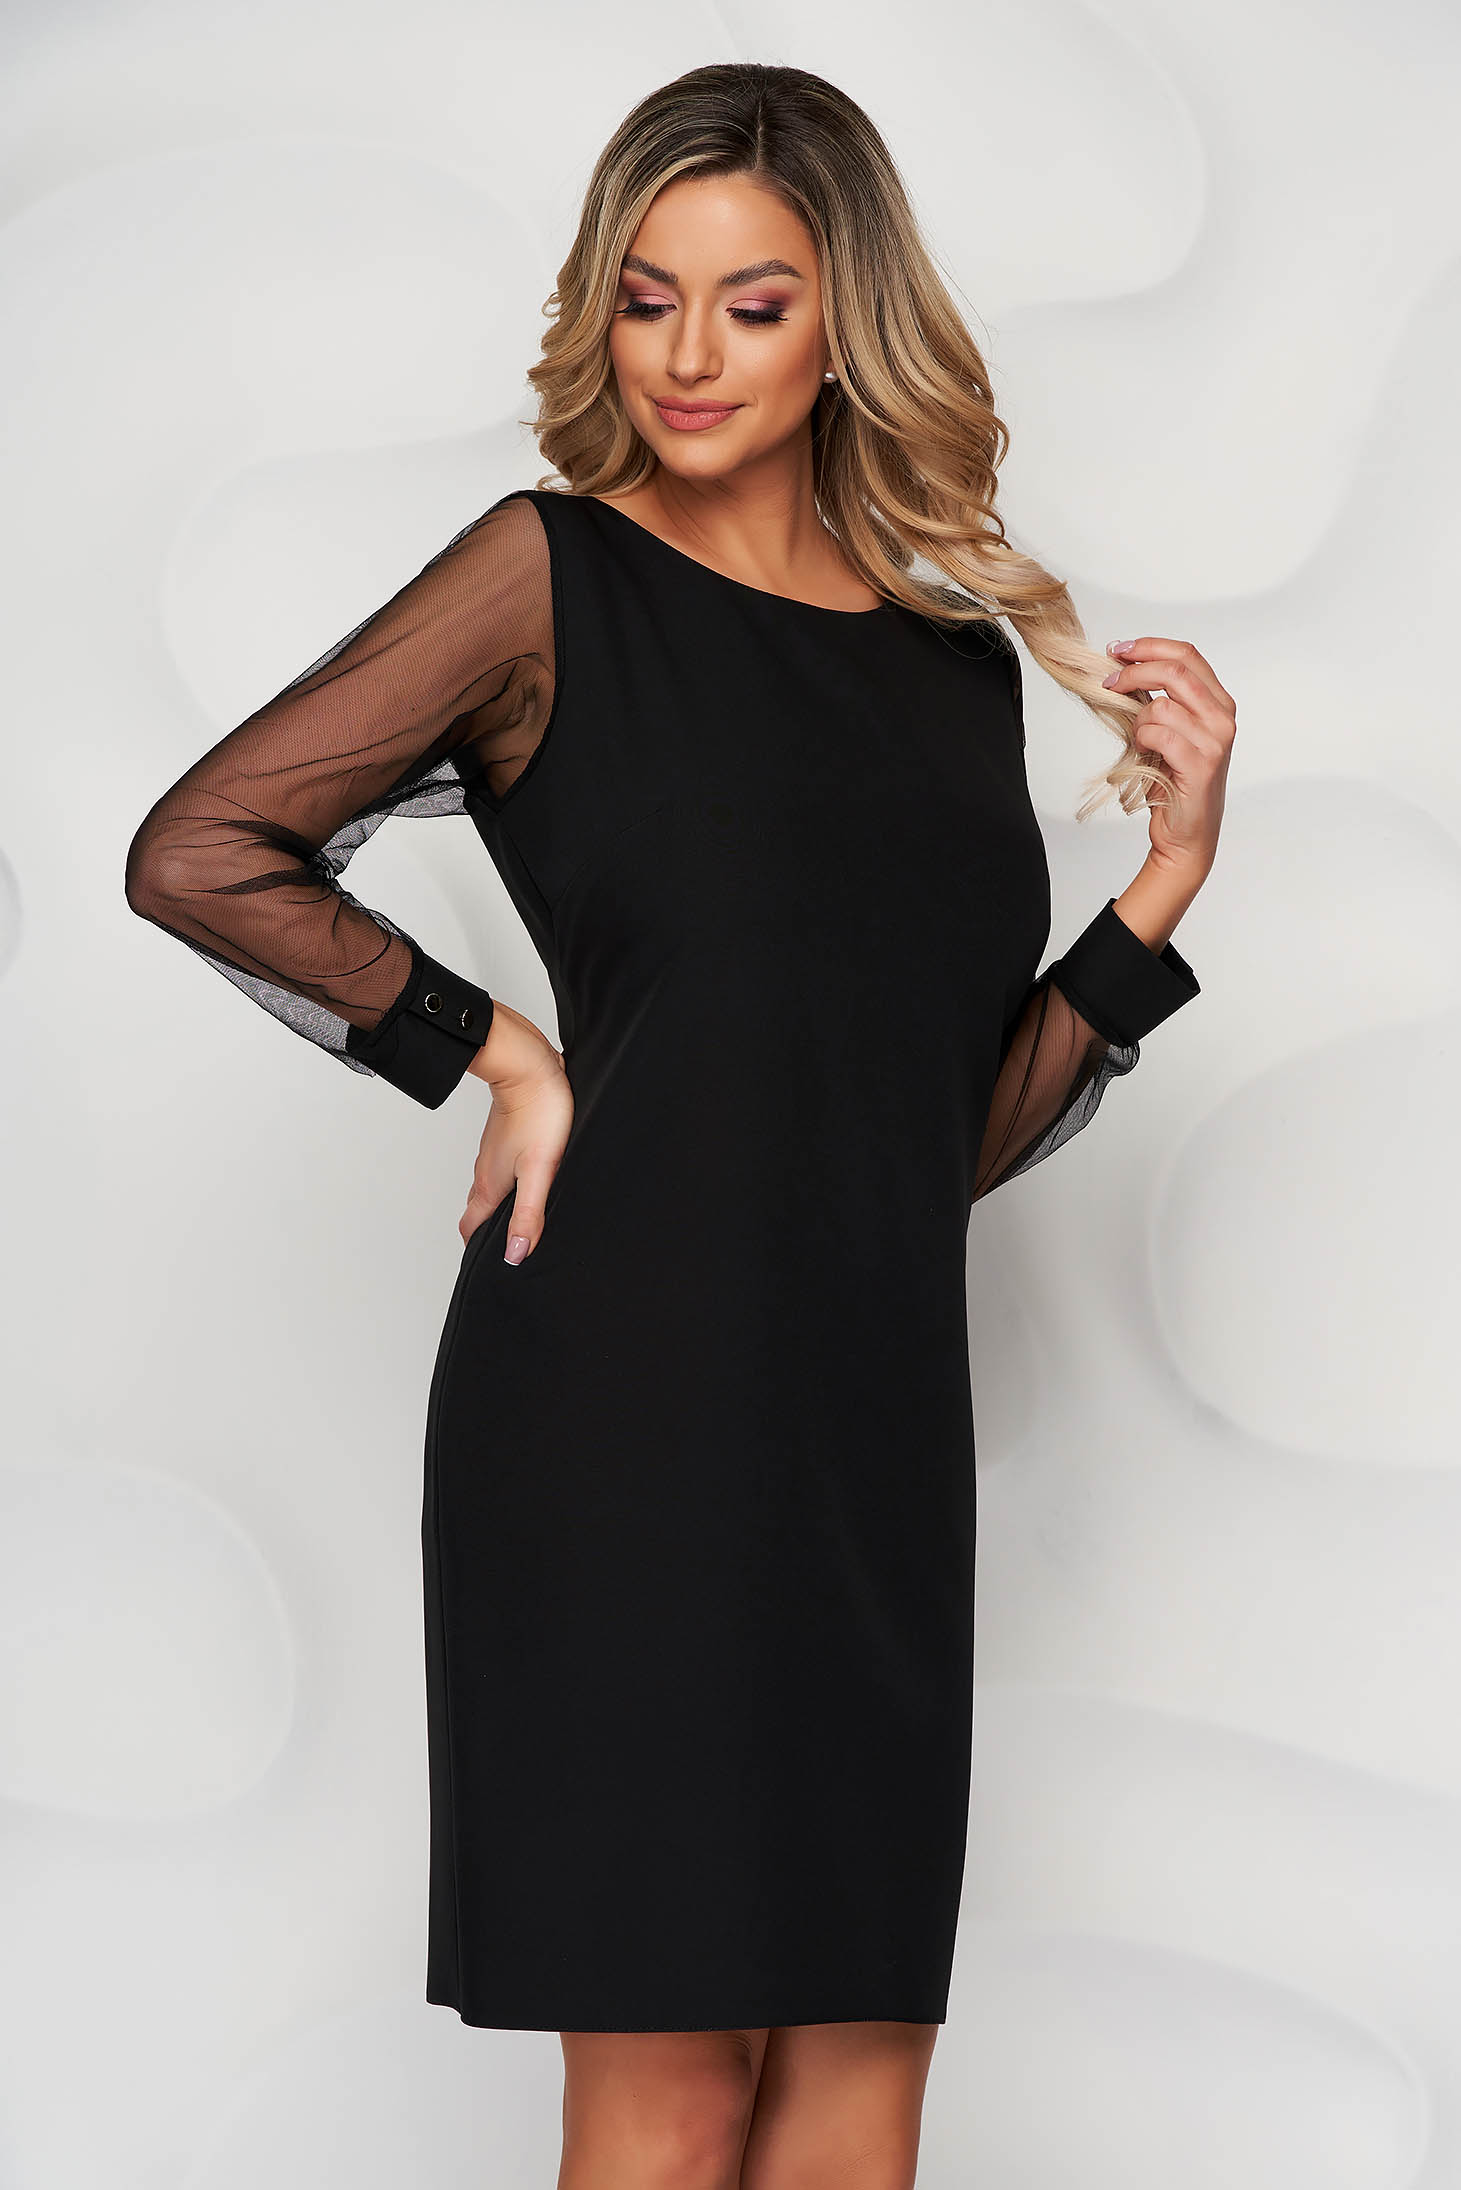 Black dress transparent sleeves with puffed sleeves straight from elastic fabric